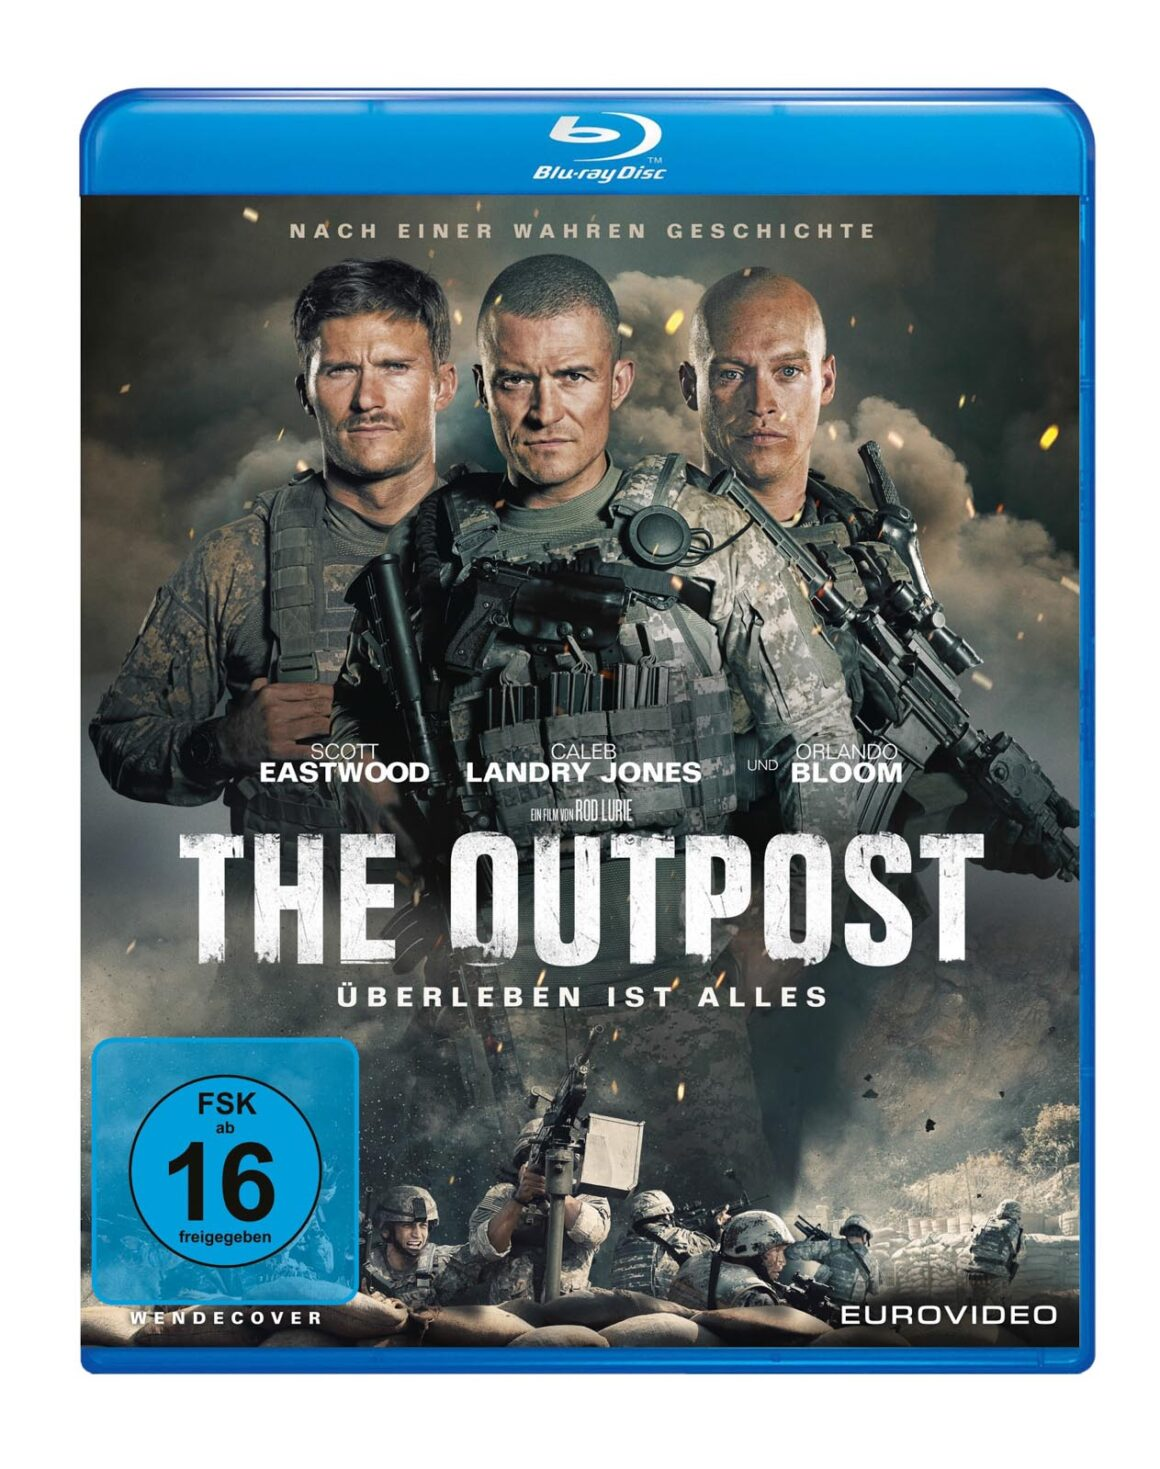 The Outpost_Bluray